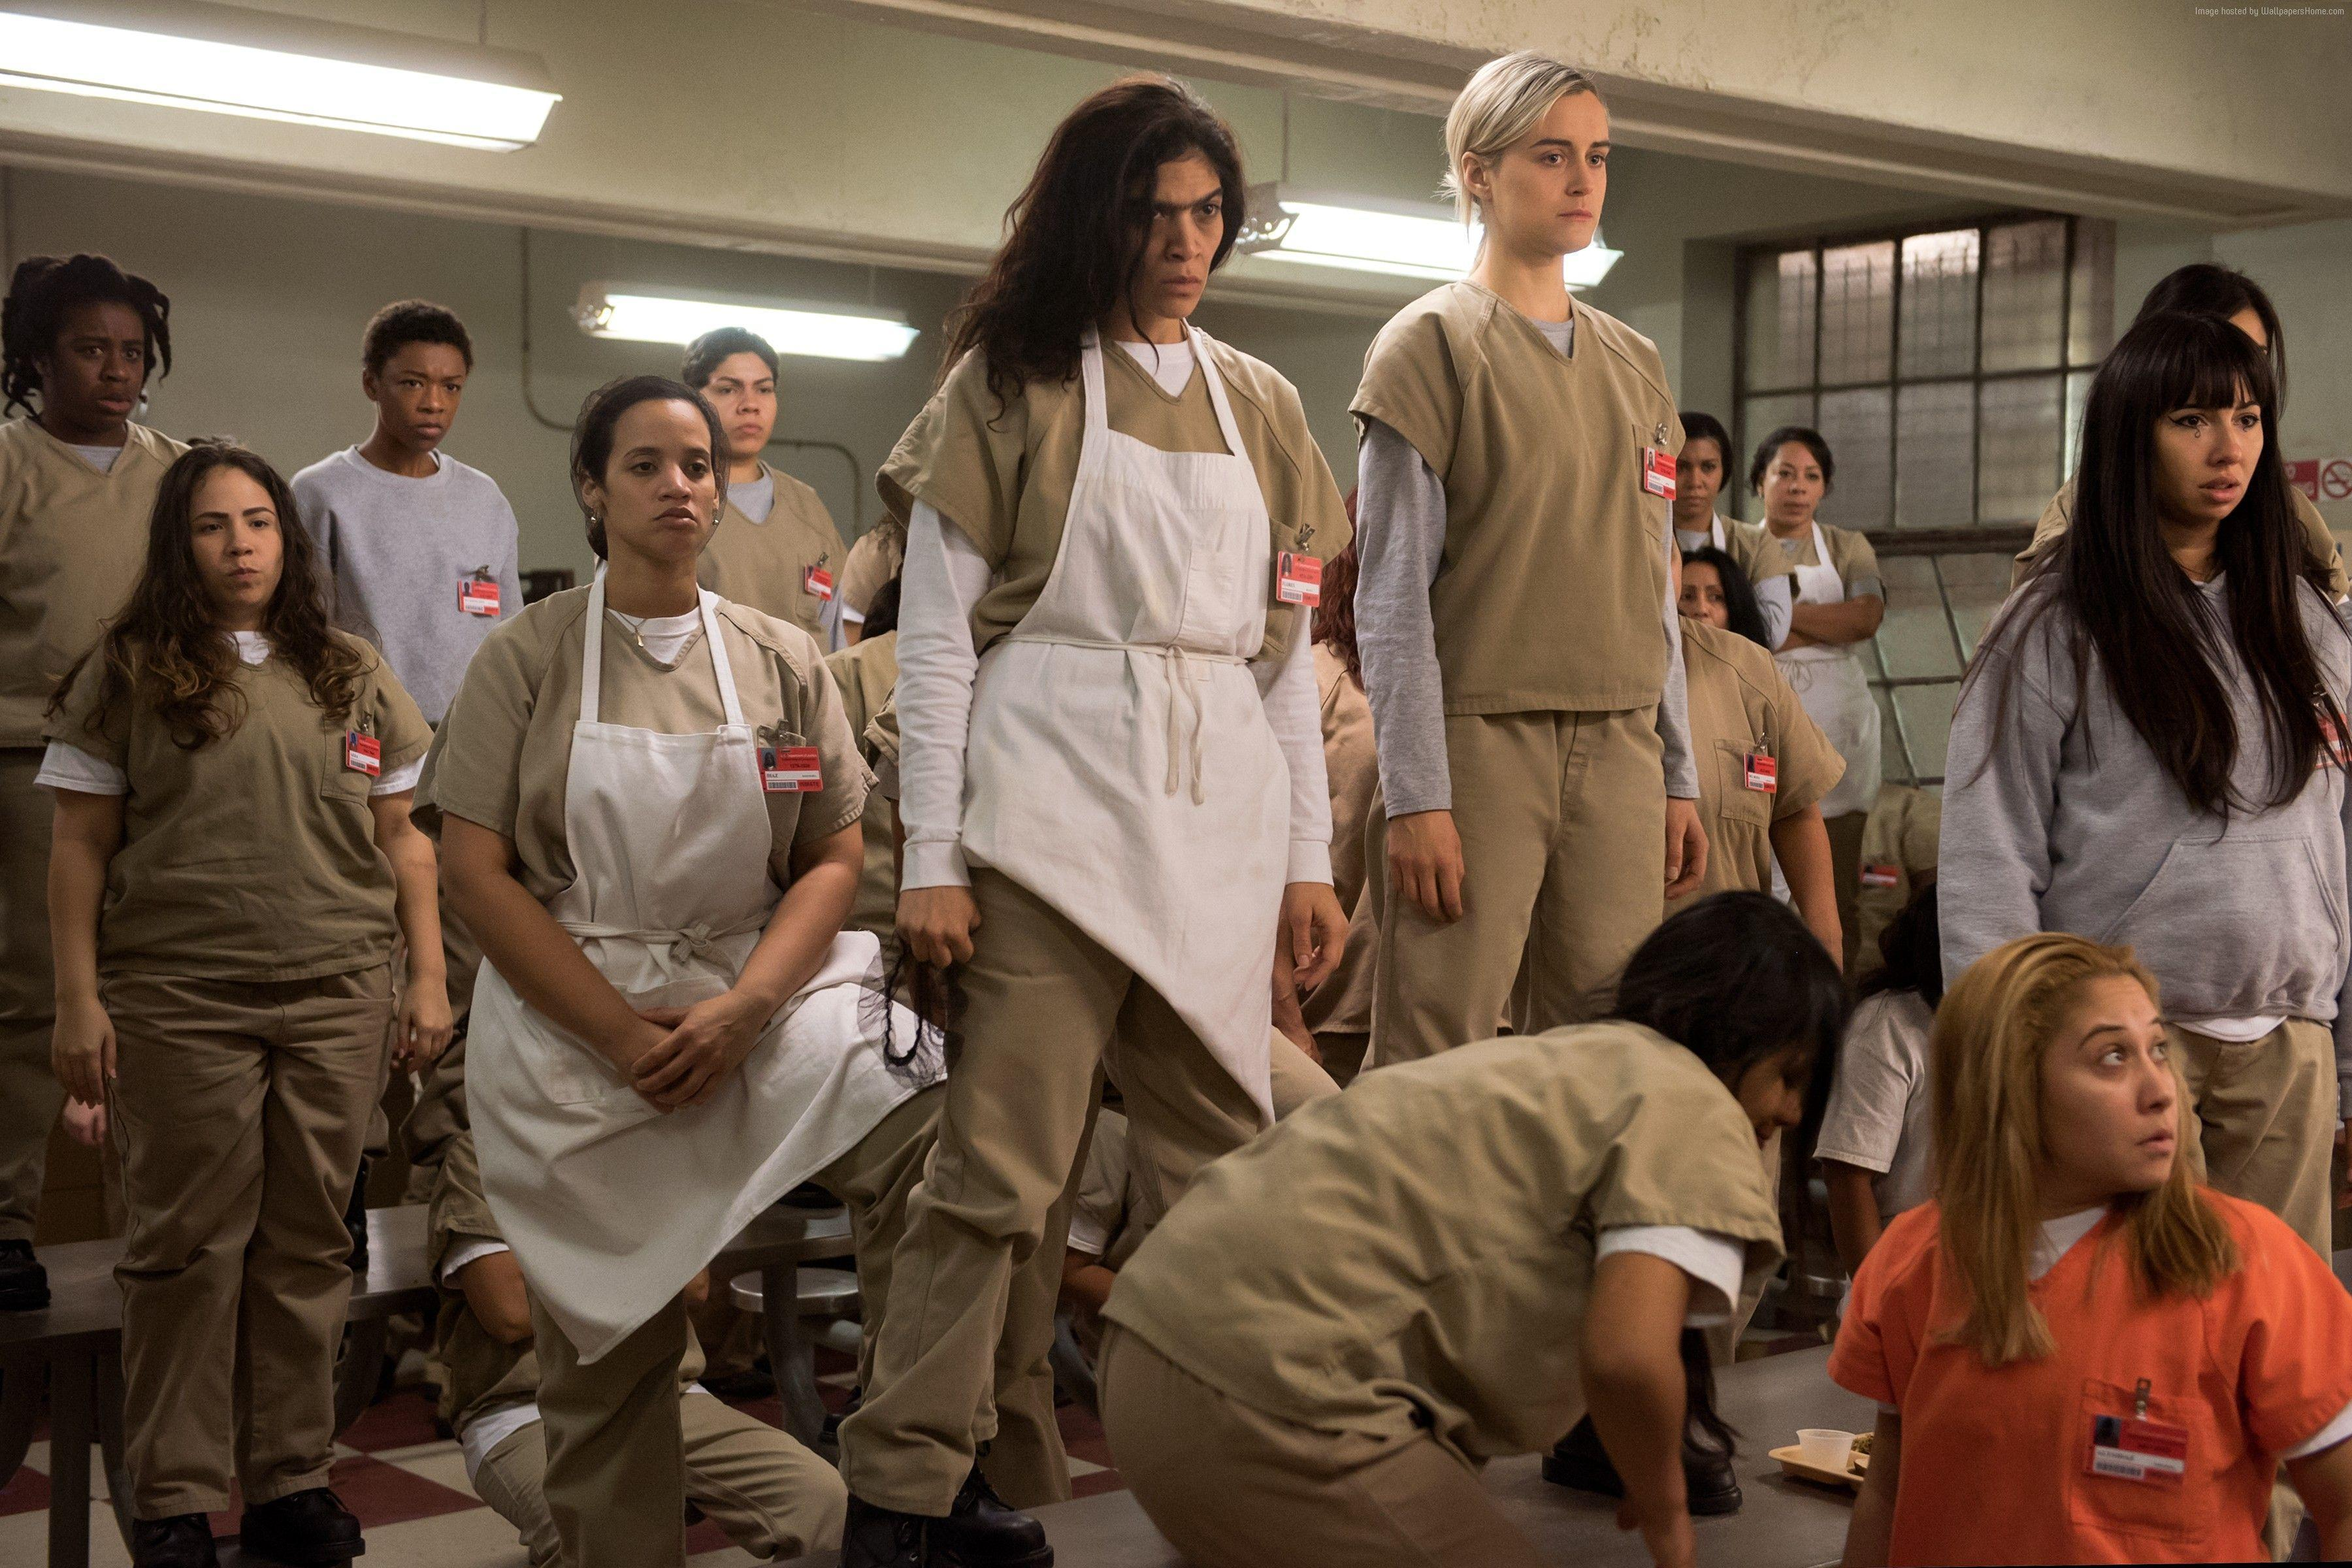 Orange is the new black Wallpaper, Movies: Orange is the new black ...